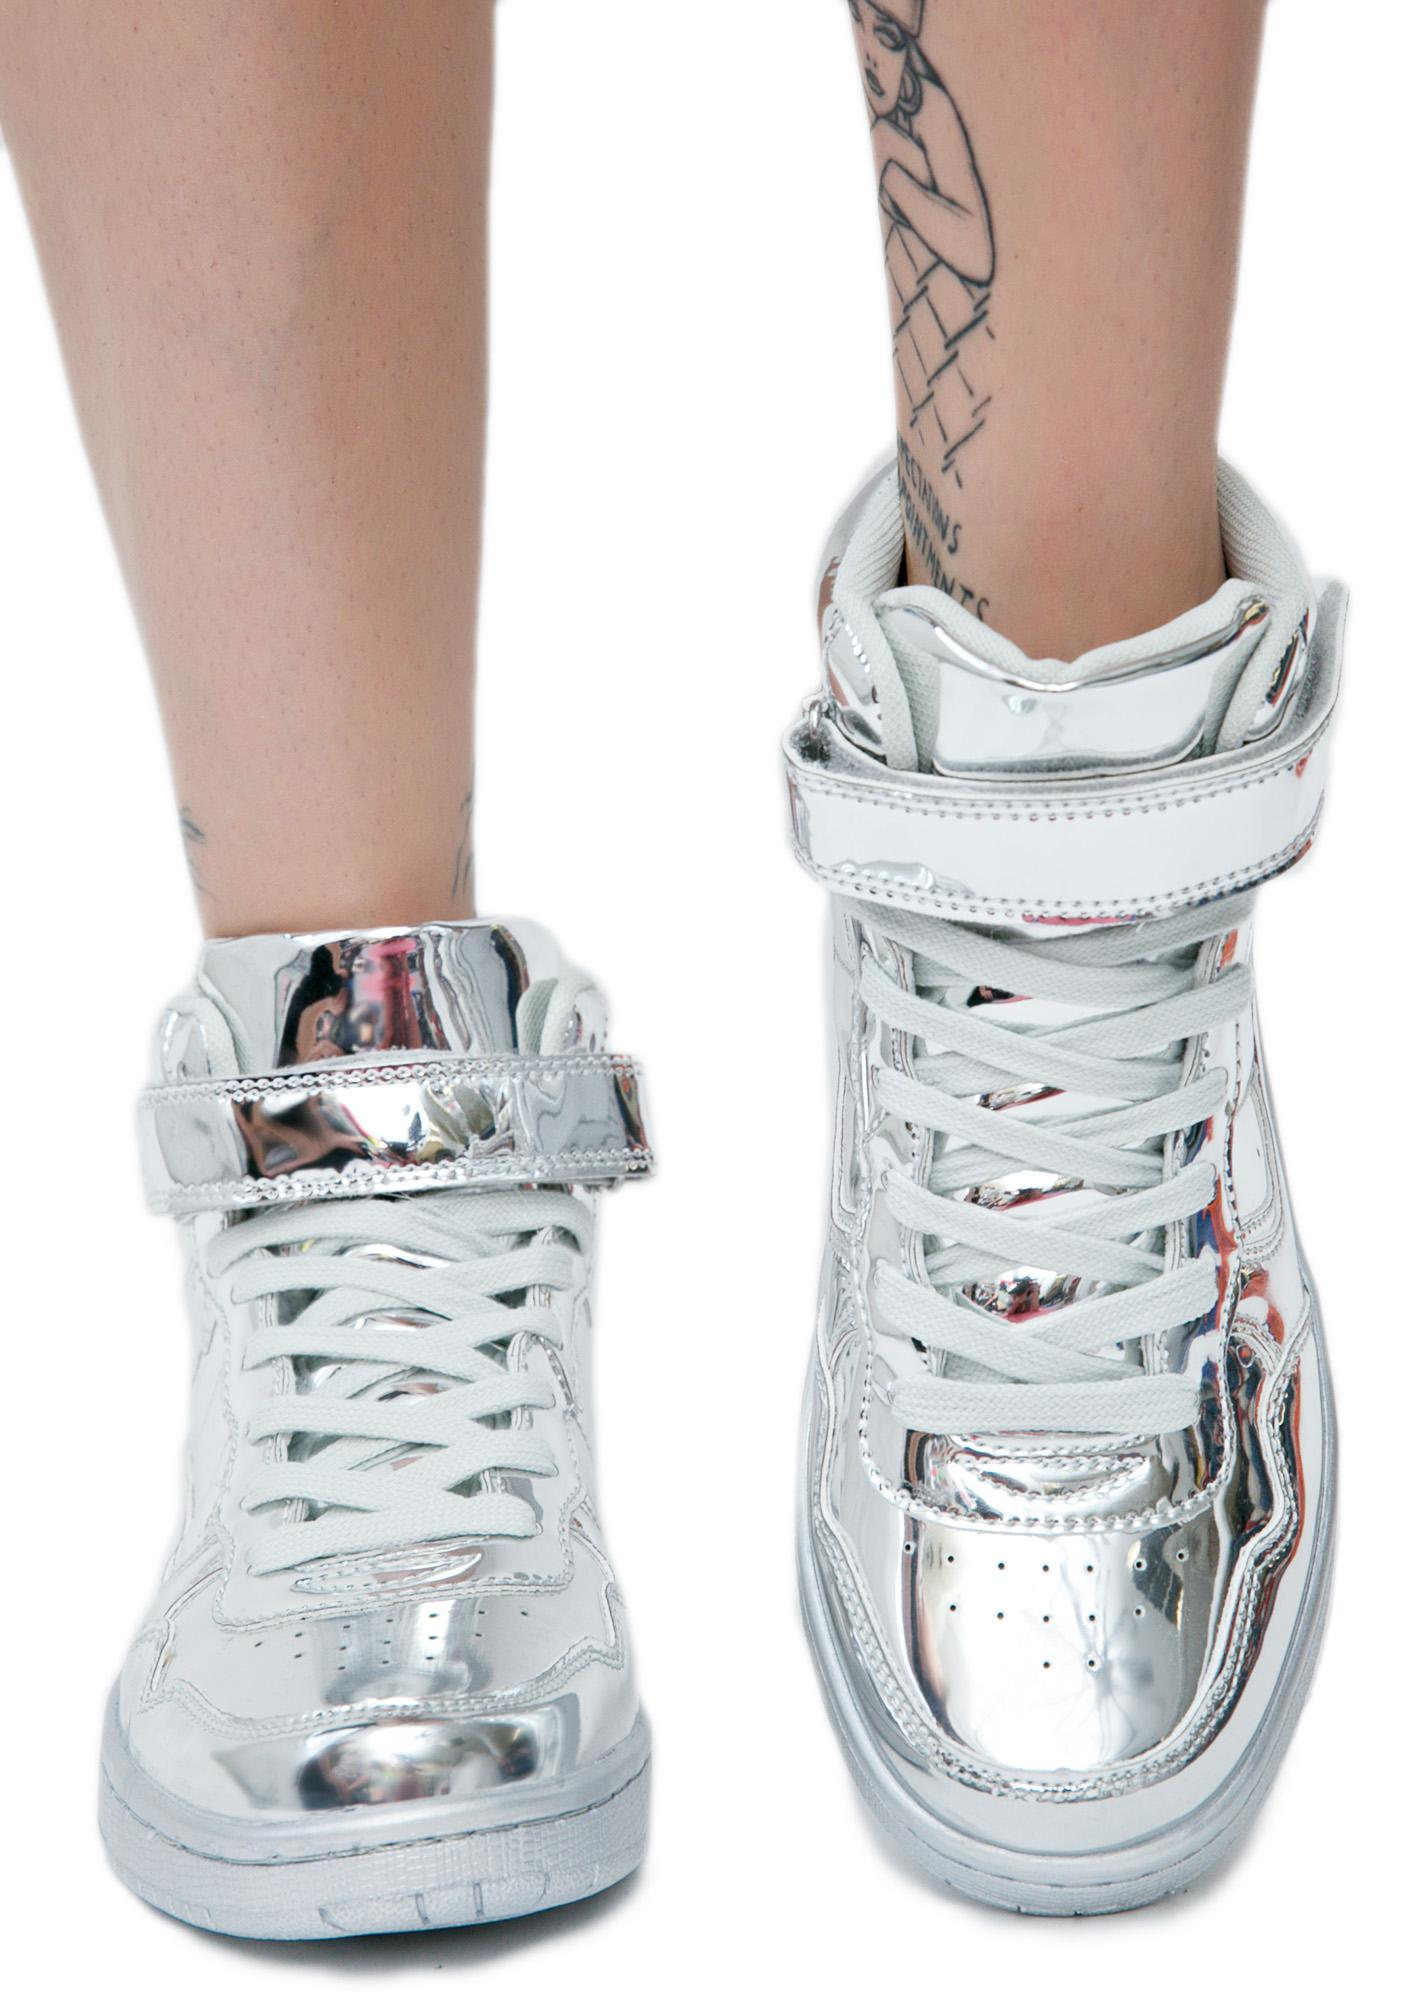 Silver Lining Metallic High Top Sneakers